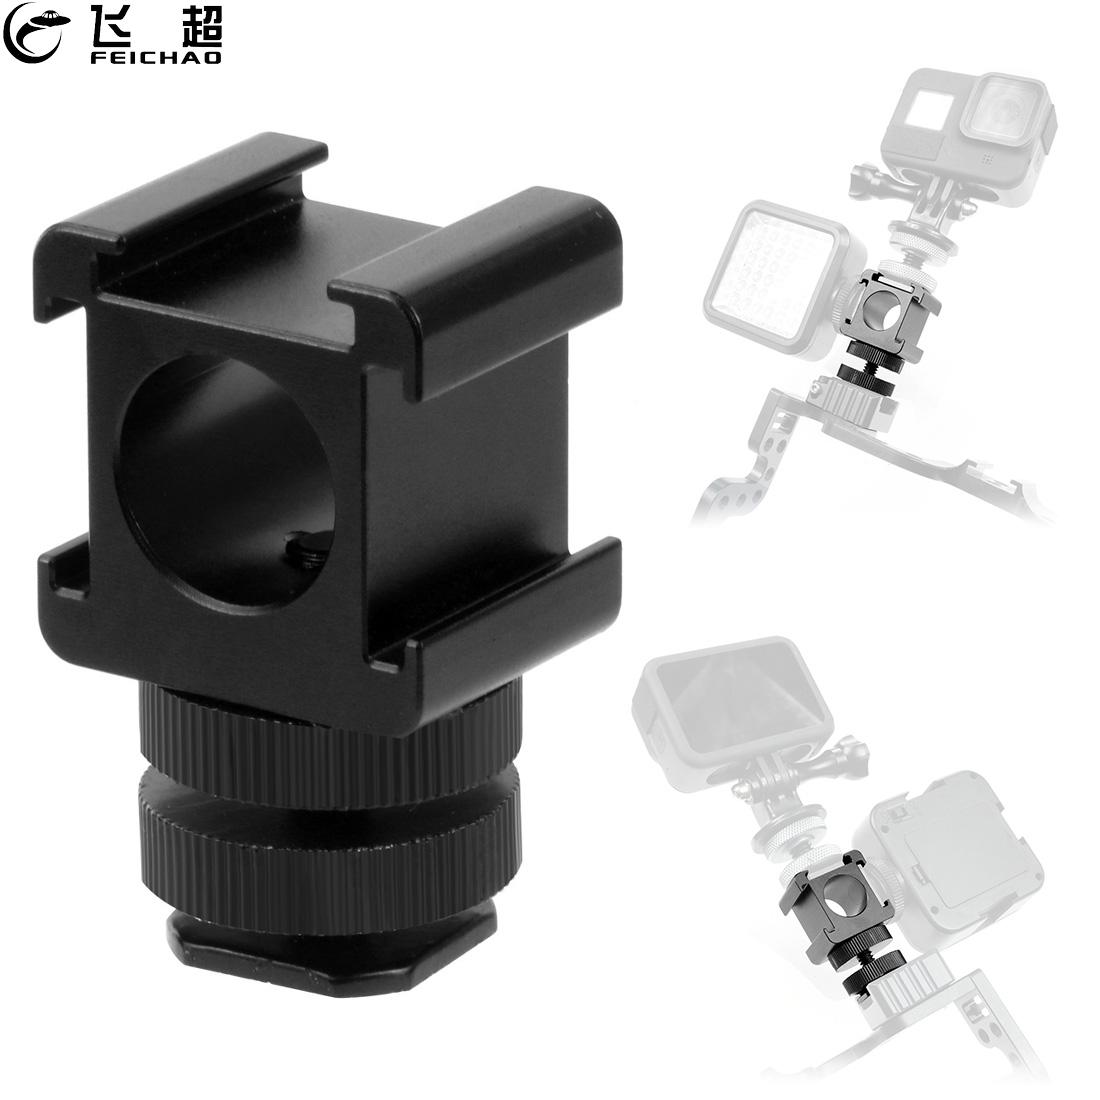 3 in 1 Cold Hot Shoe Adapter 1/4 Base Mount Microphone Monitor Stand Holder Bracket for LED Video Flash Light SLR Photography